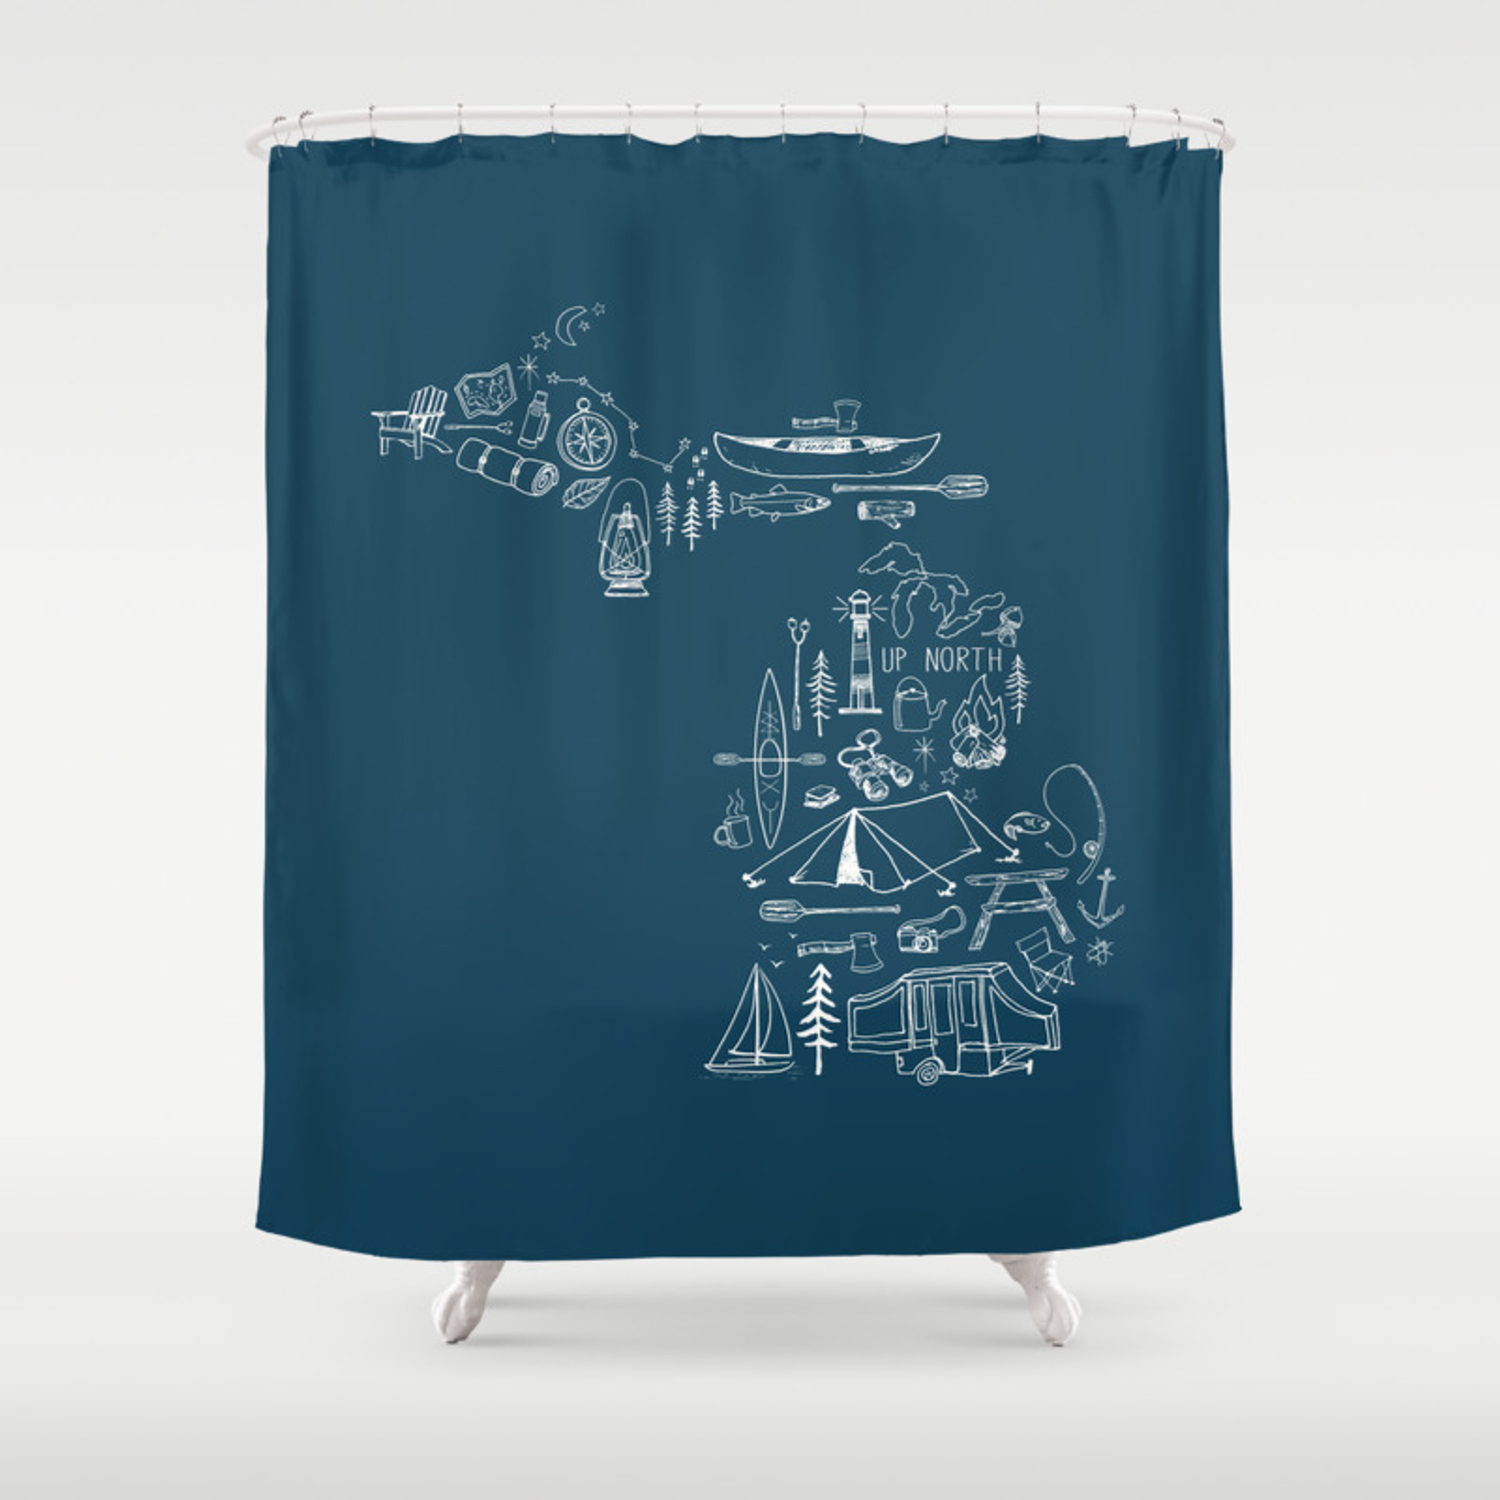 Up North Navy Collage Shower Curtain